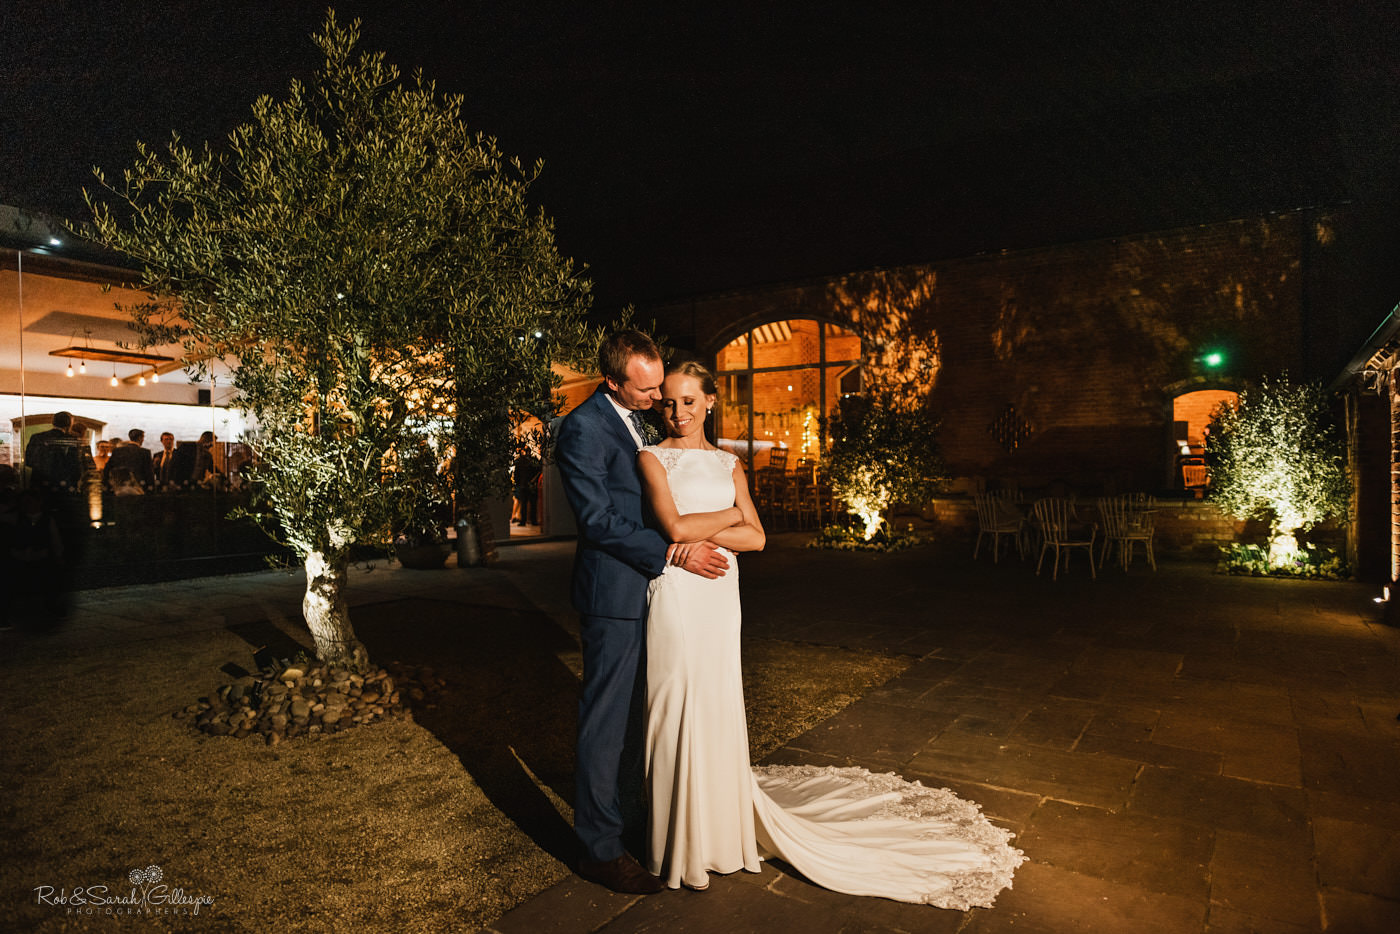 Beautiful wedding photography at Swallows Nest Barn in Warwickshire